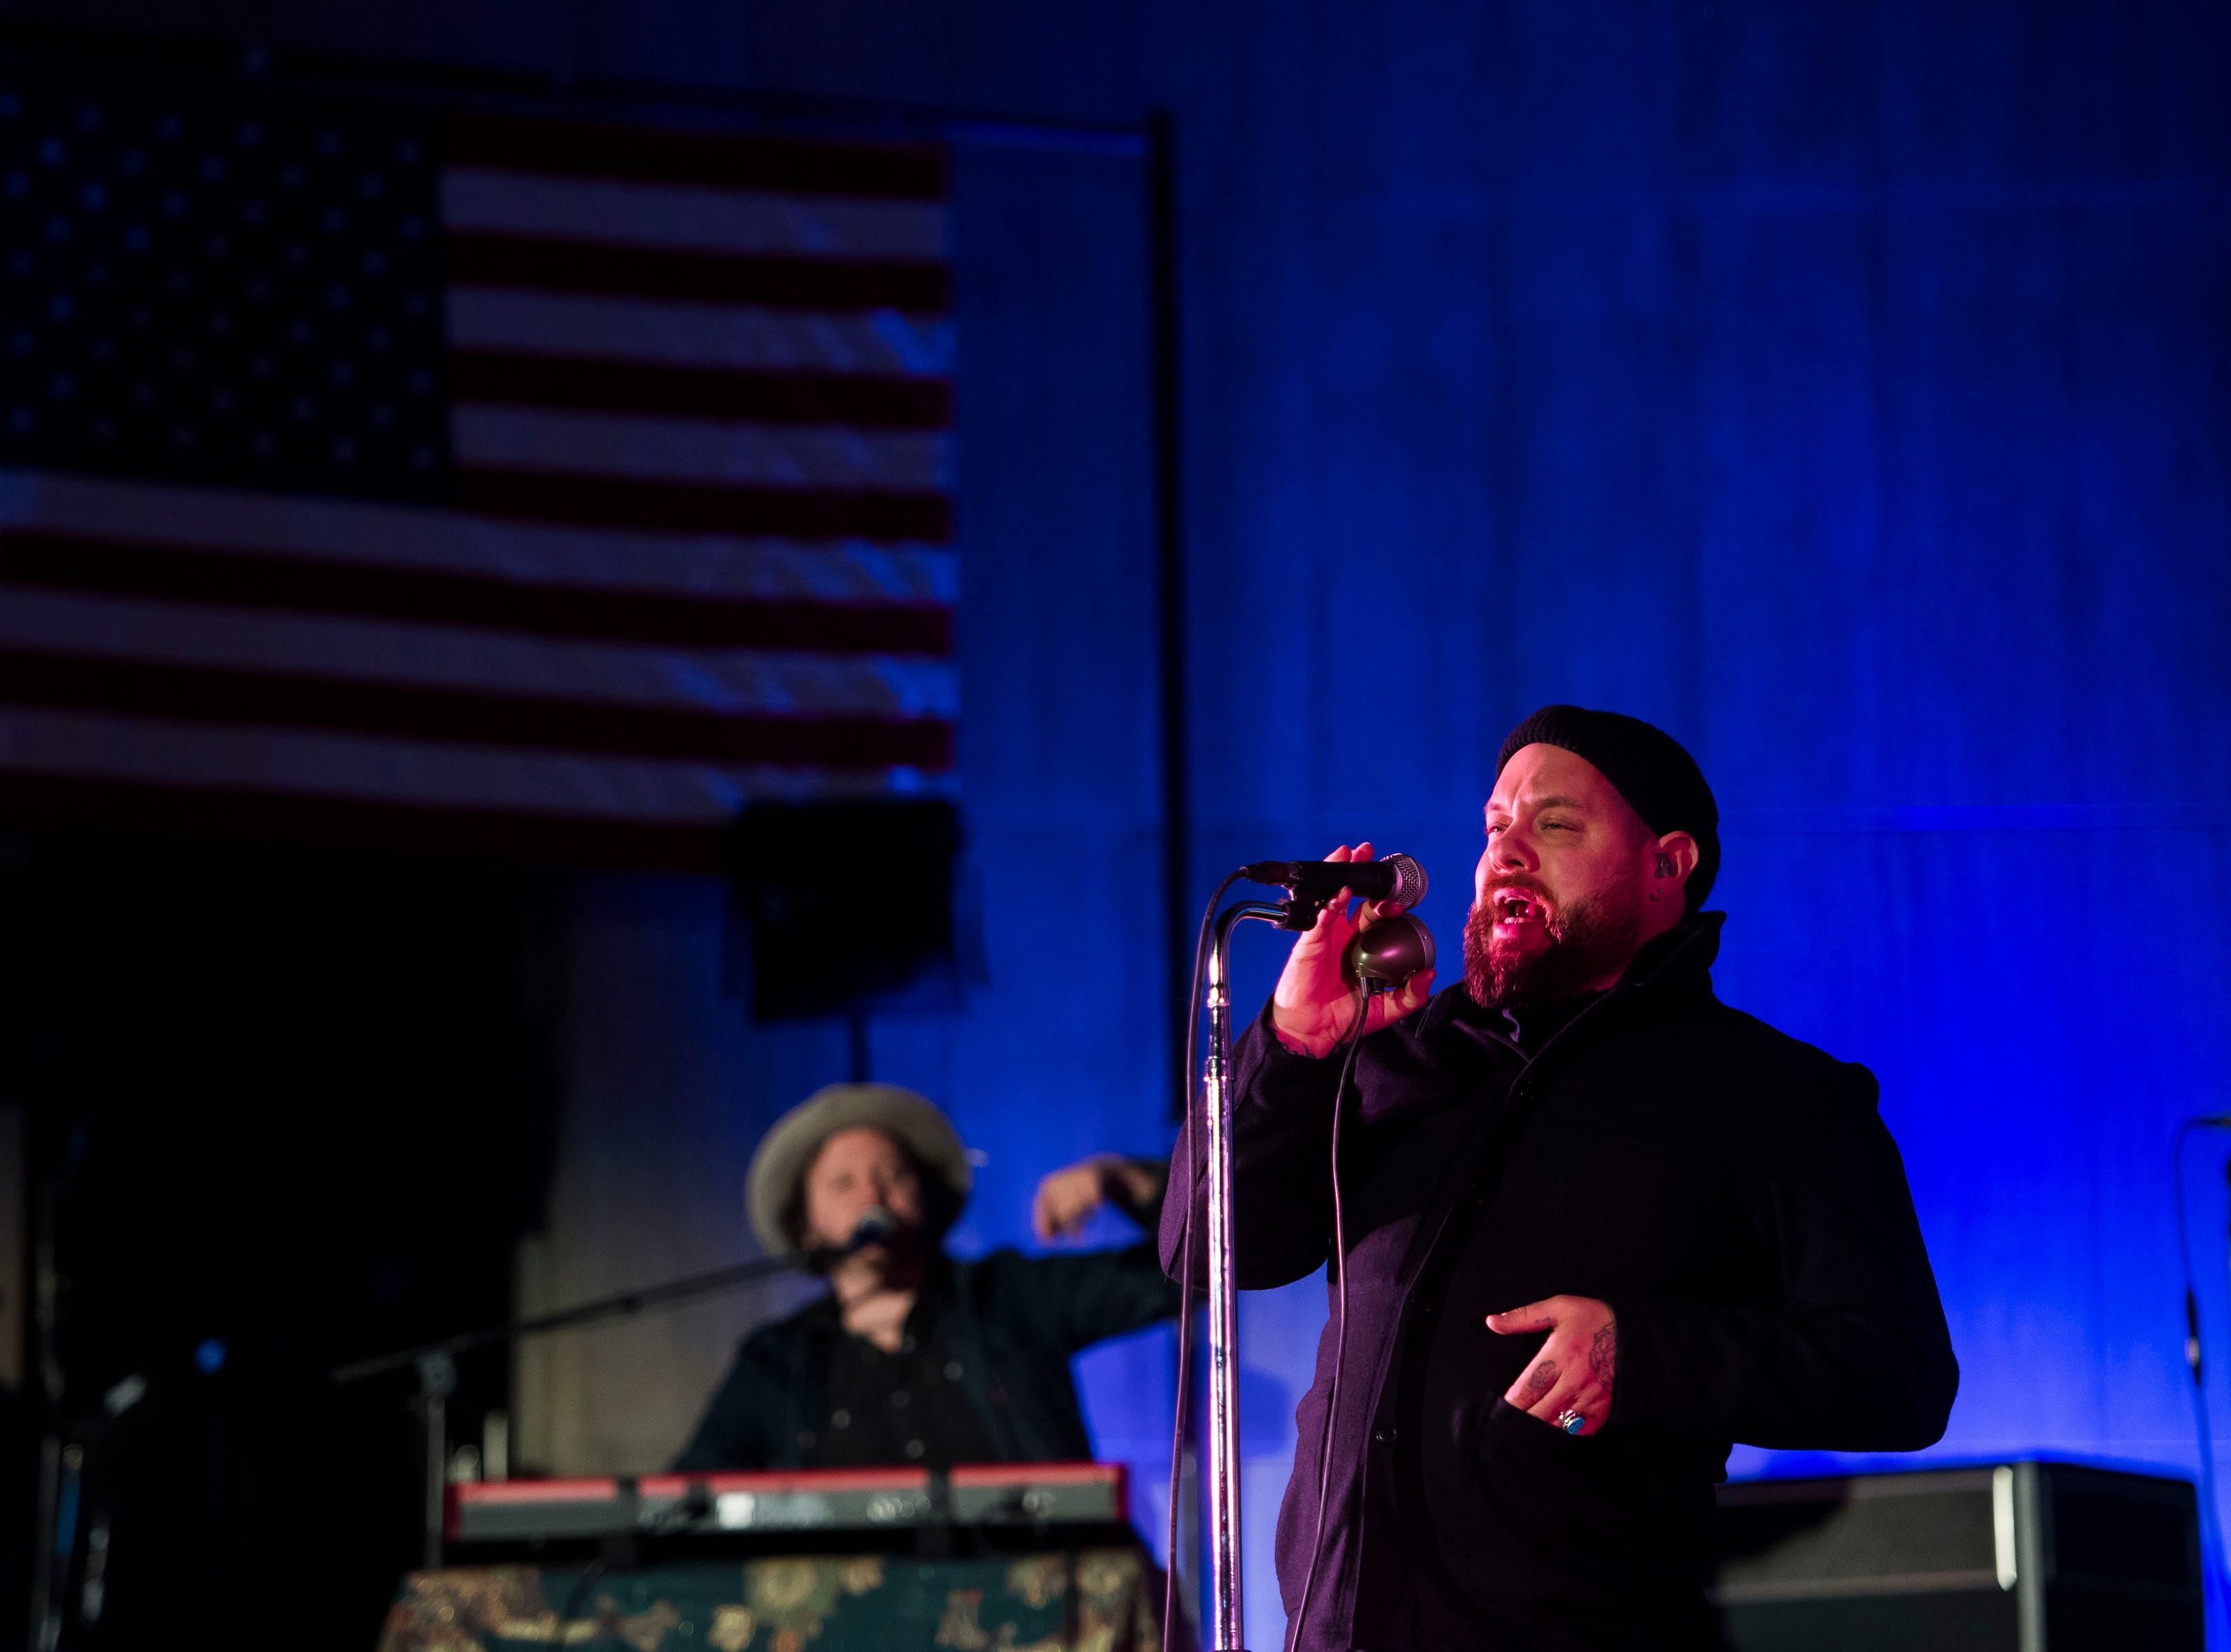 Nathaniel Rateliff performs at the John Hickenlooper presidential campaign kick-off rally on Thursday, March 7, 2019, at the Greek Ampitheatre in Civic Center Park in Denver, Colo.